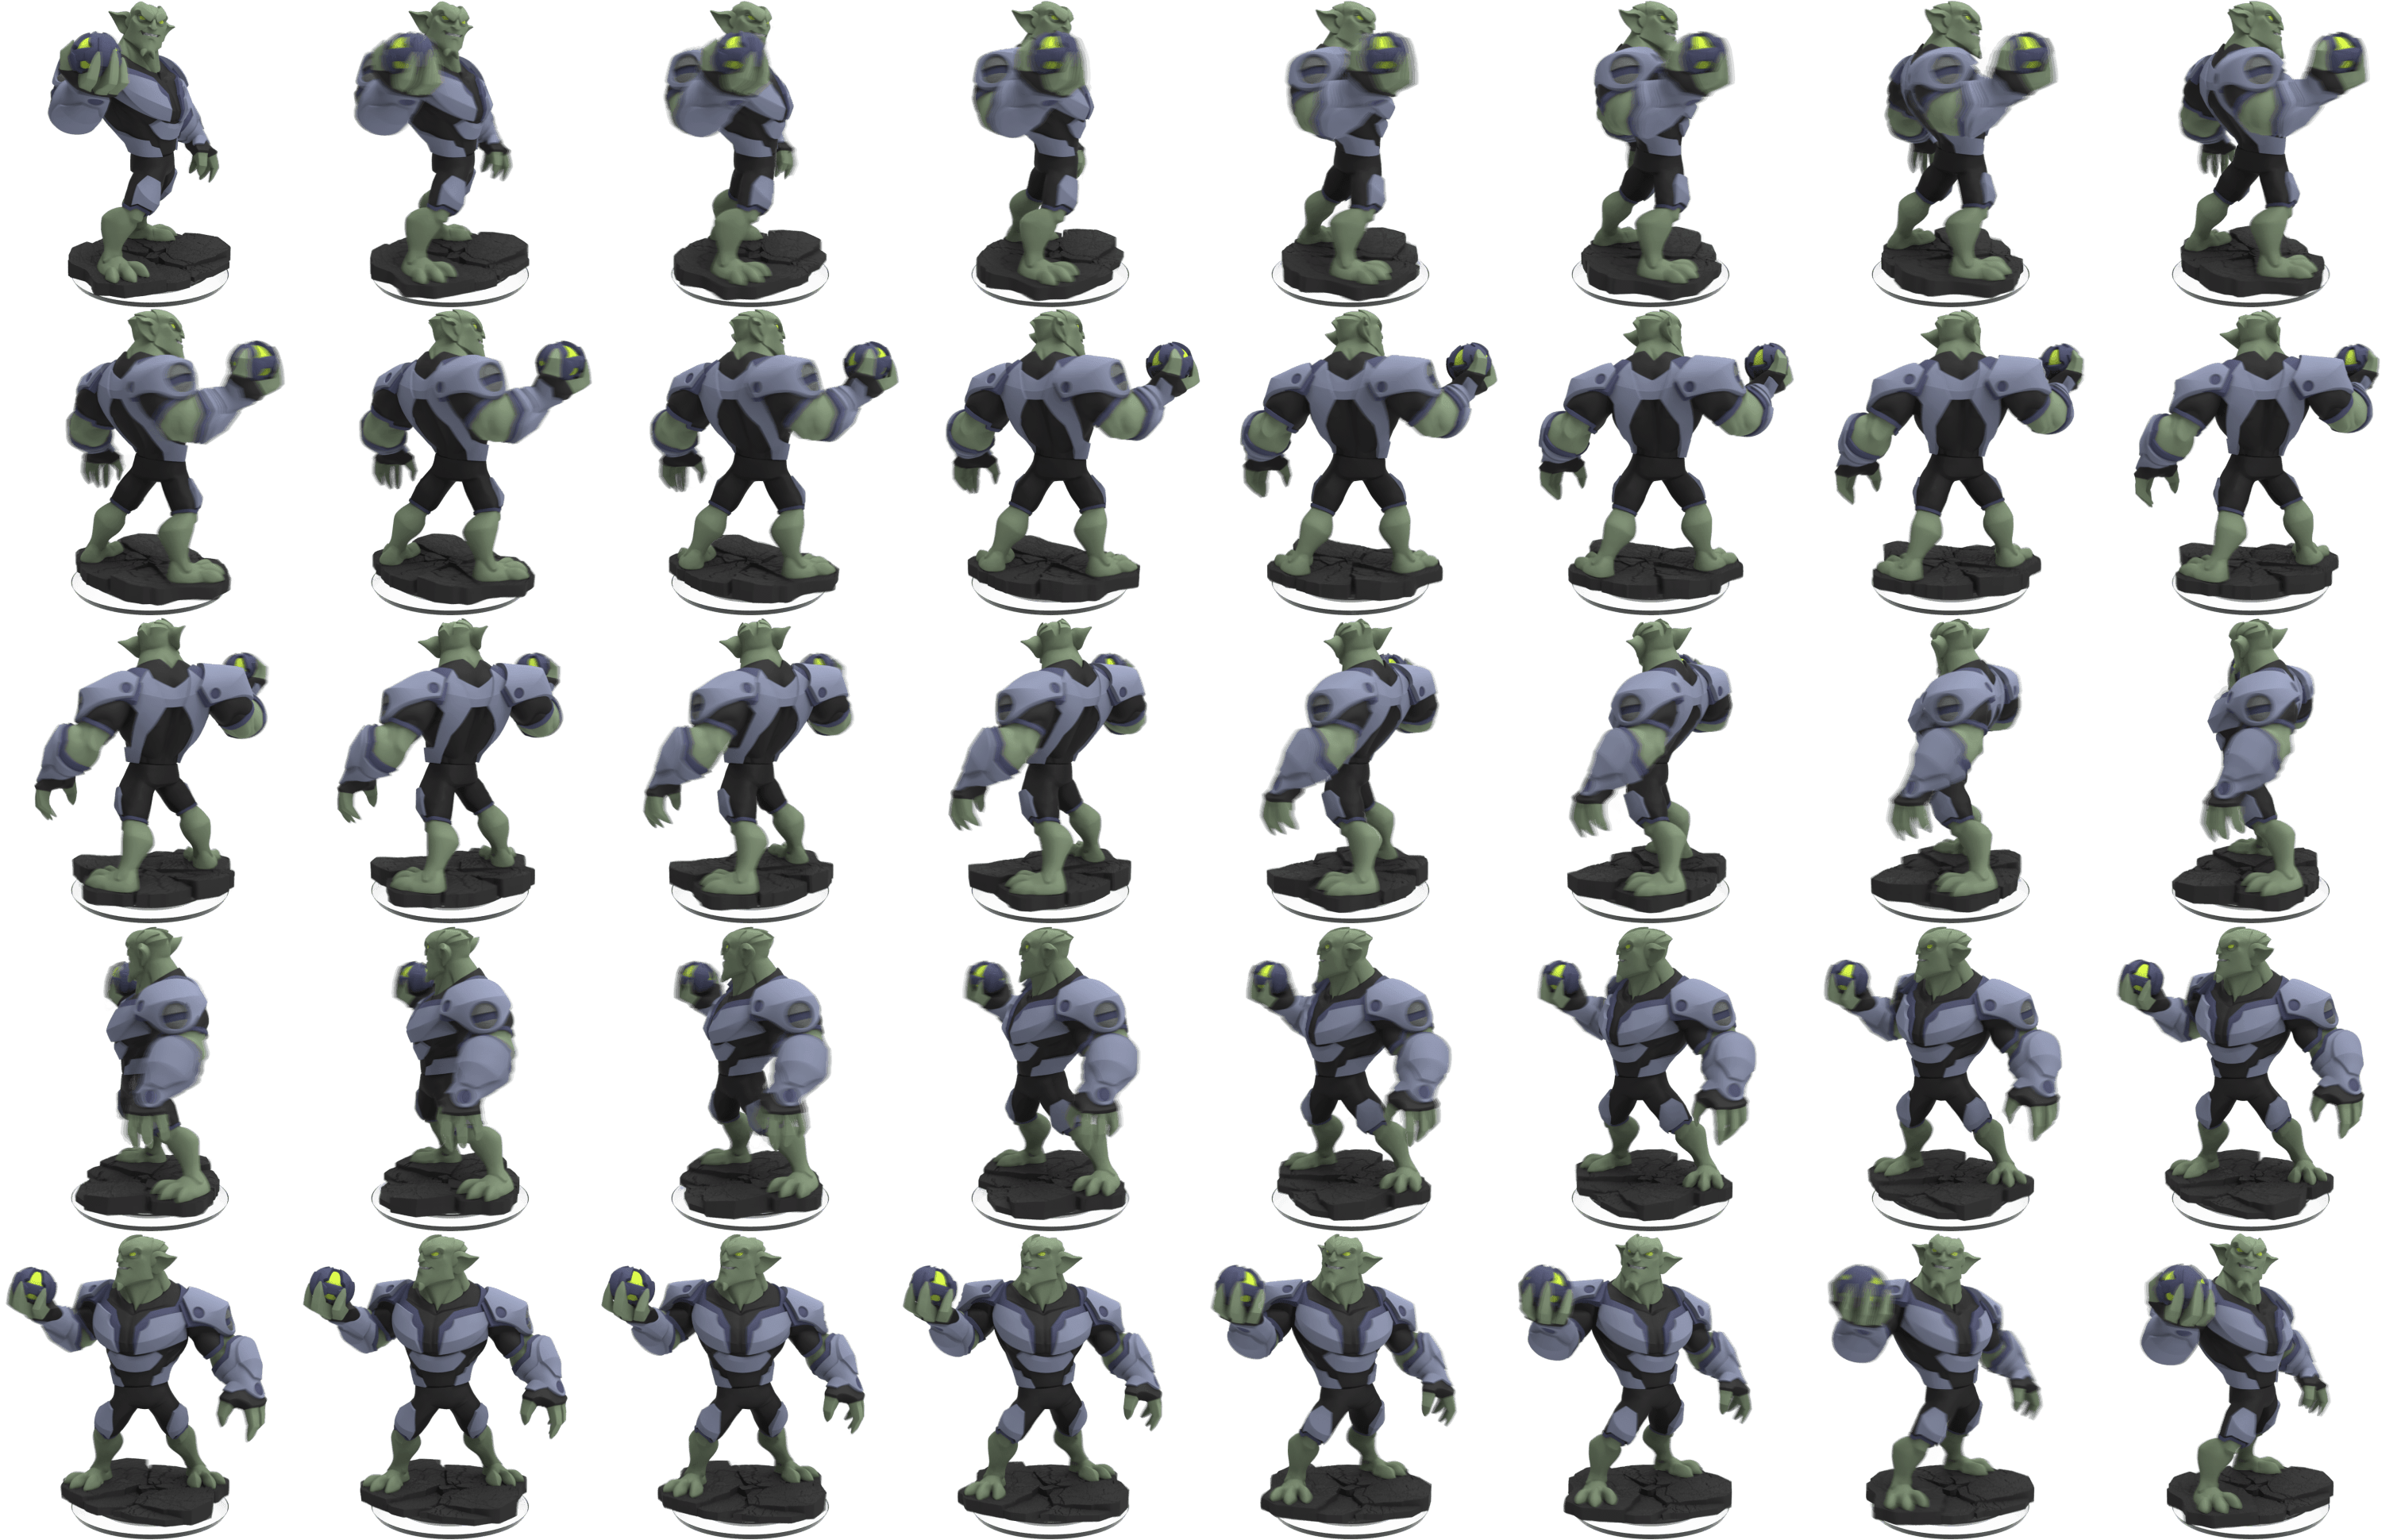 Cannon birds eye view png. Image green goblin sprite